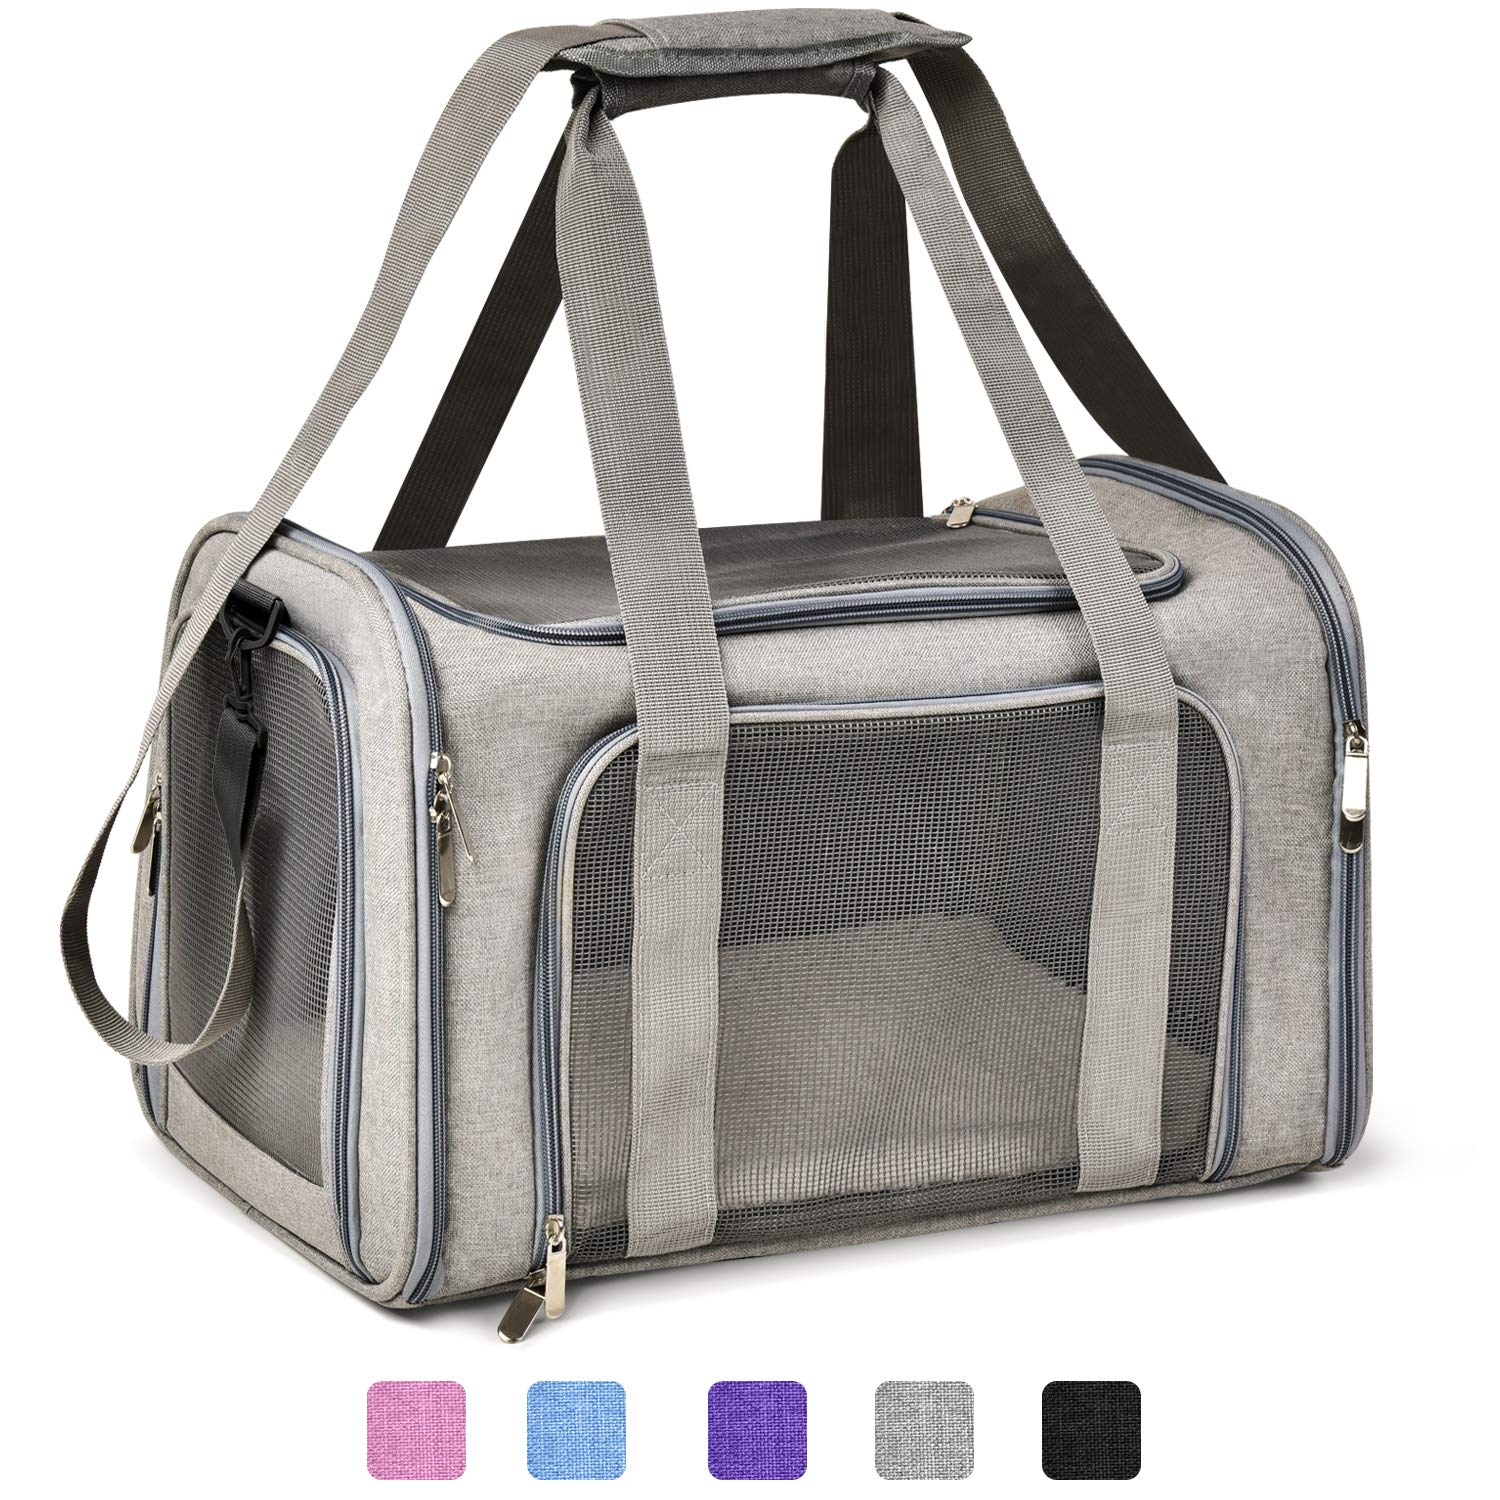 Henkelion Cat Carriers Dog Carrier Pet Carrier For Small / Medium Cats Dogs Puppies (Up To 15lbs), TSA Airline Approved Small Dog Carrier Soft Sided, Collapsible Waterproof Travel Puppy Carrier - Grey by Henkelion